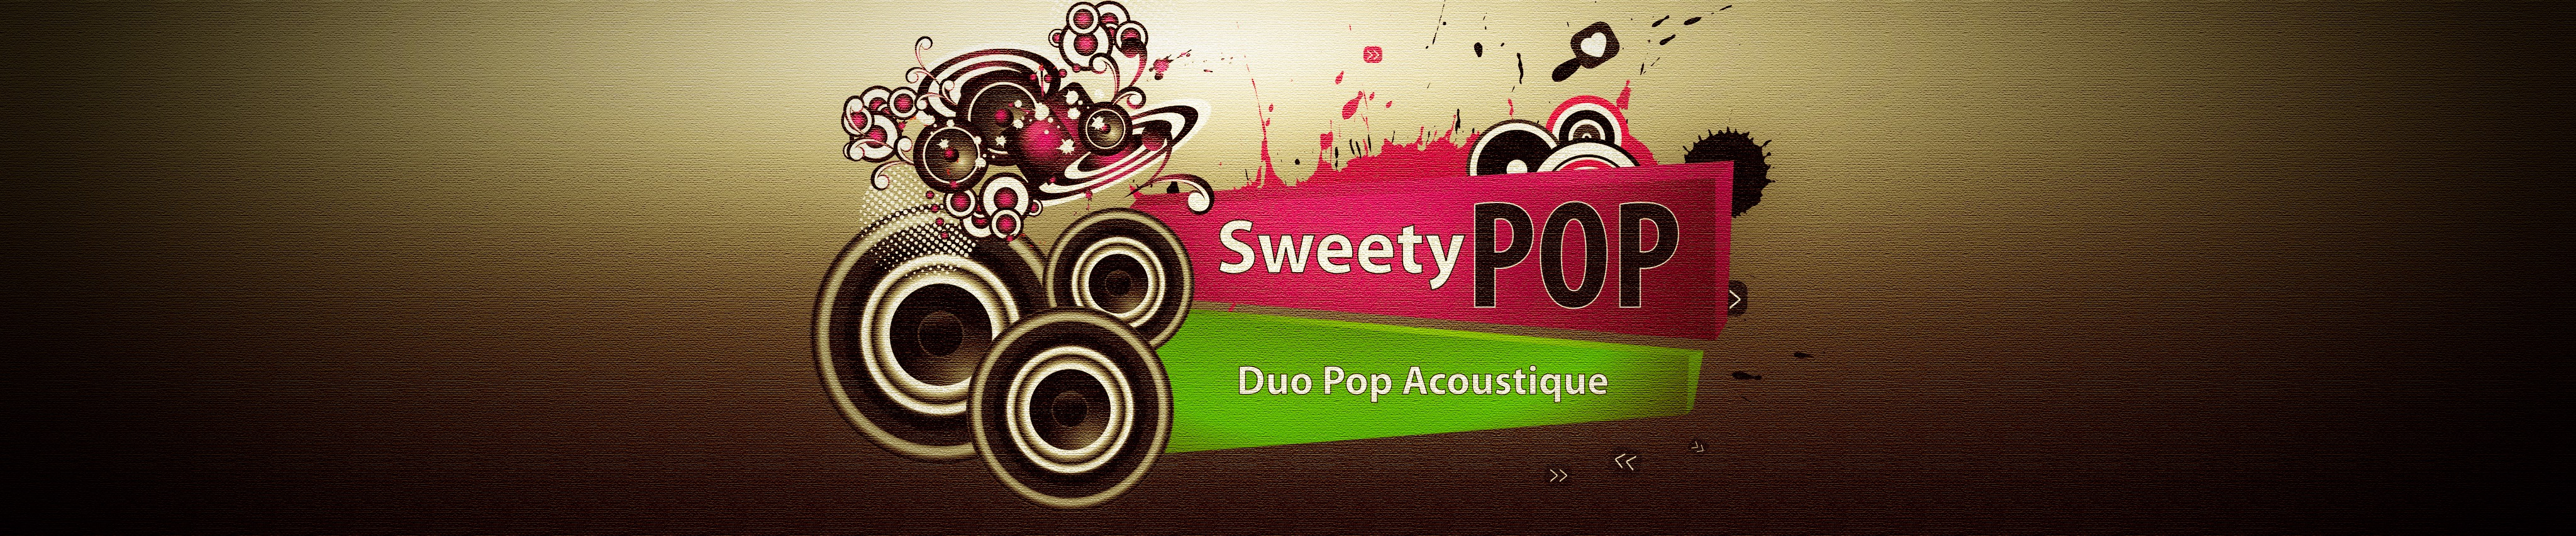 Sweety Pop